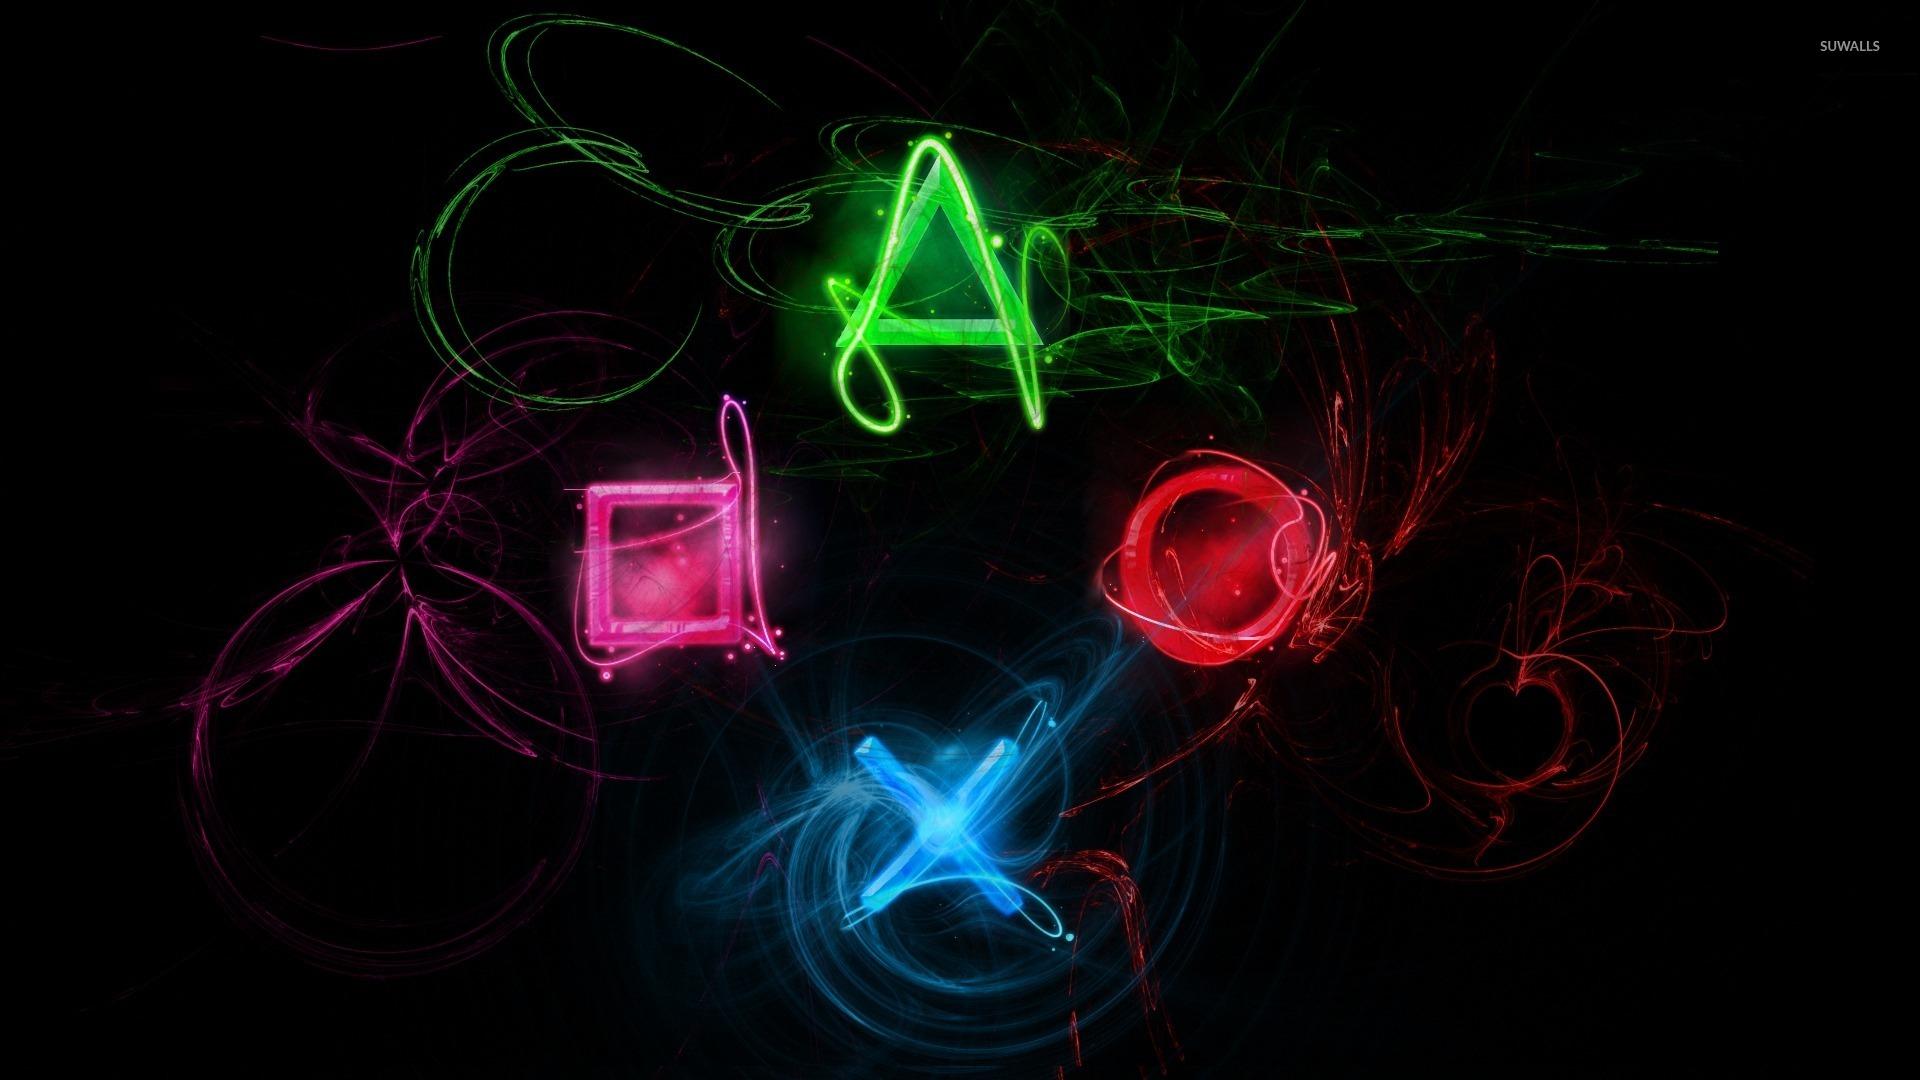 Neon Playstation Buttons Wallpaper Game Wallpapers 20963